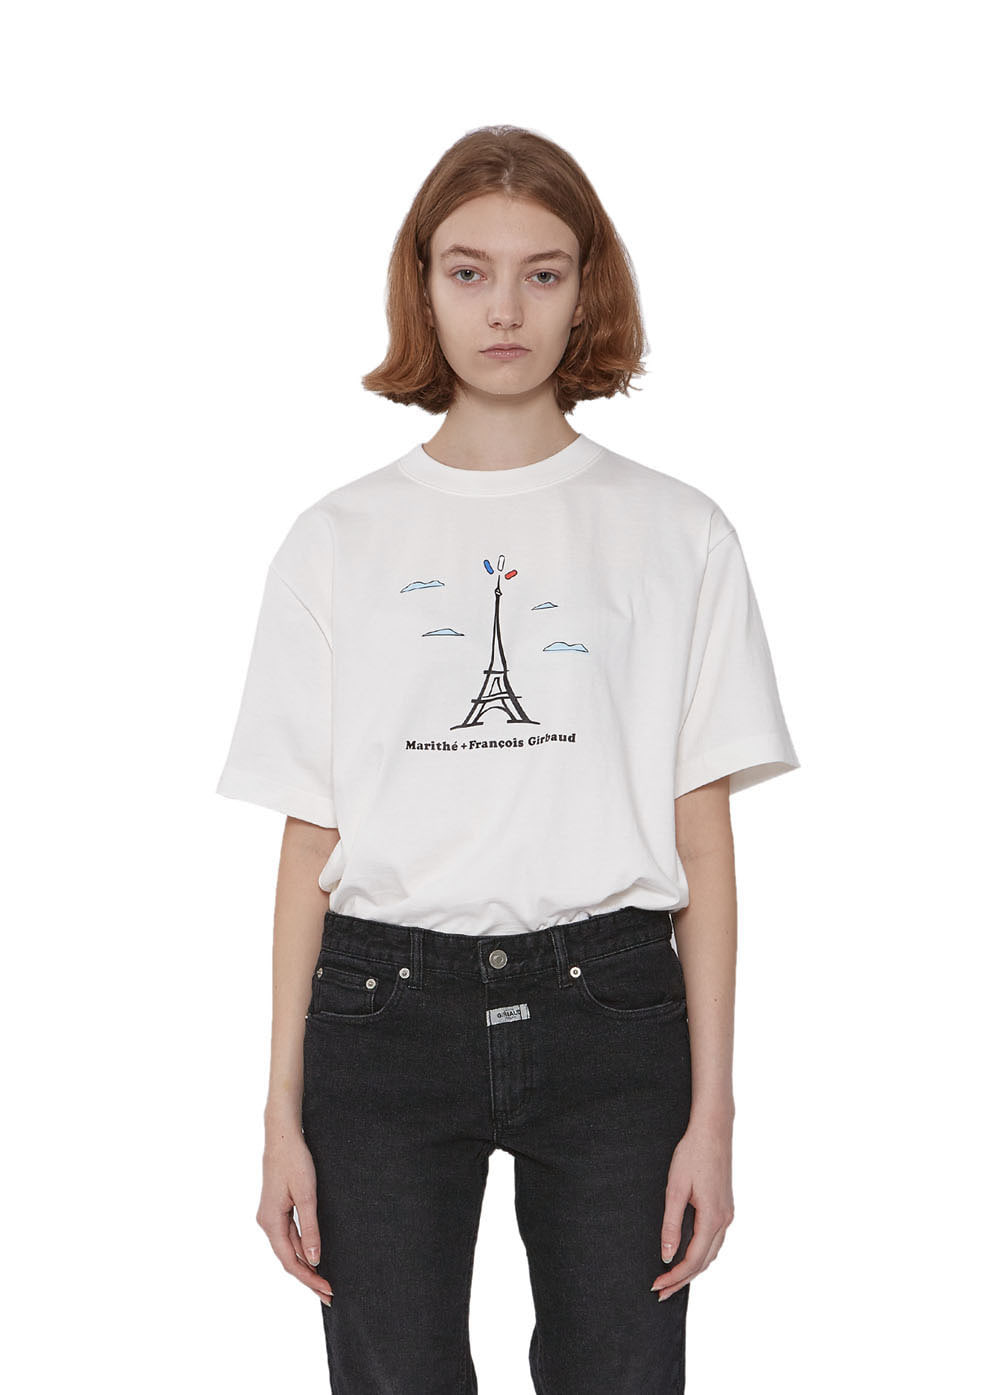 MFG TOWER TEE off white